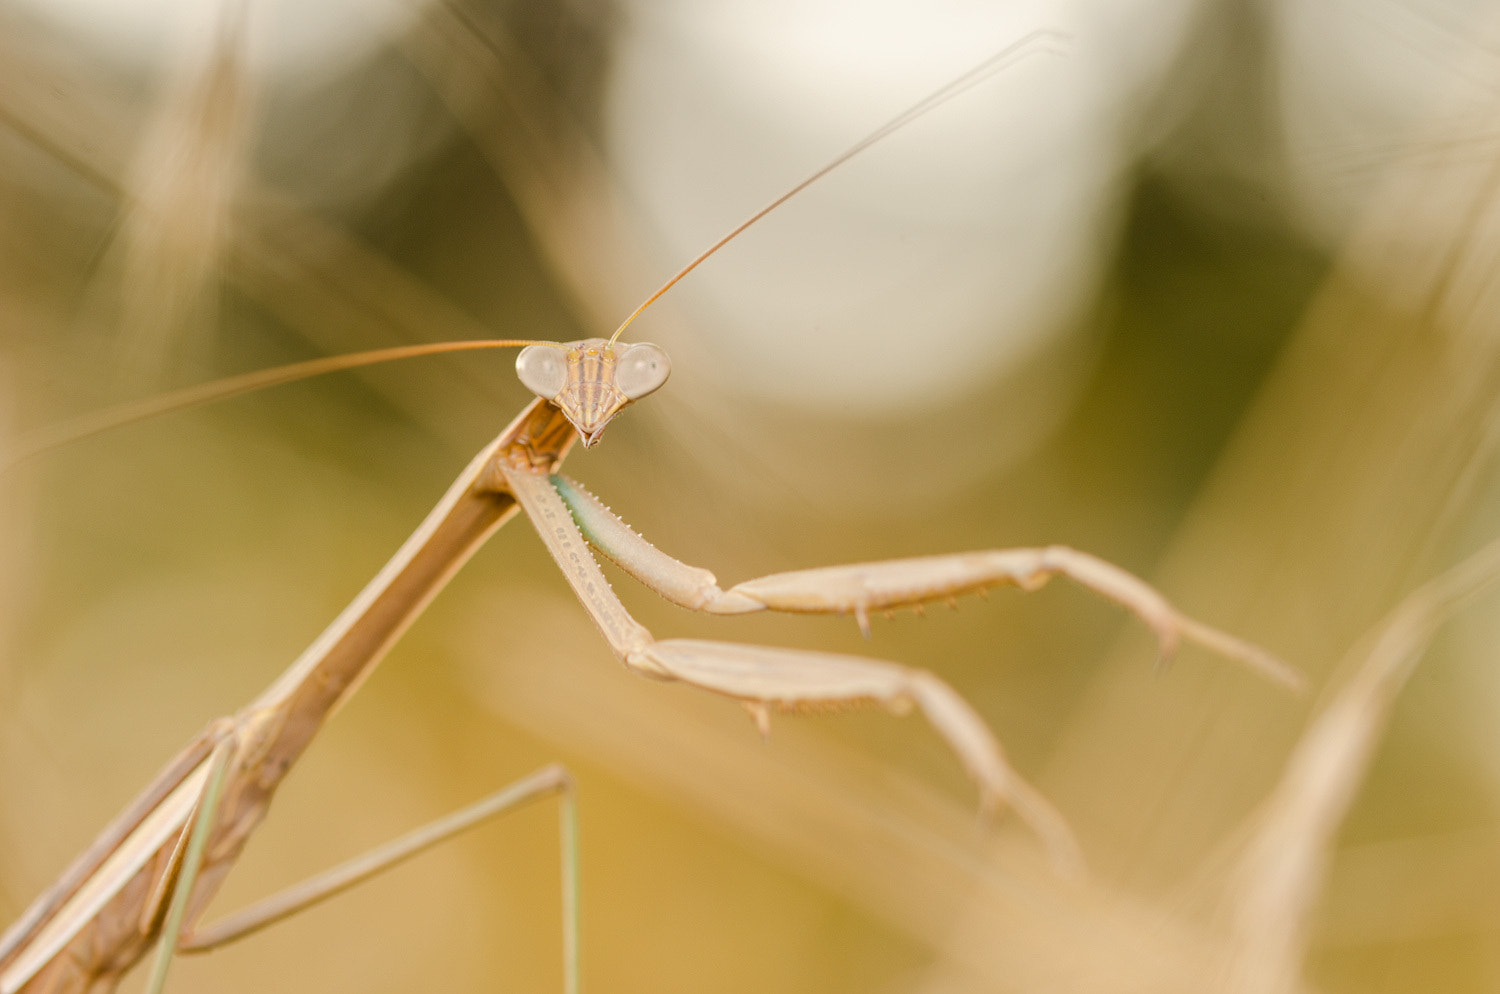 Photograph Mantis by Peerasith Chaisanit on 500px